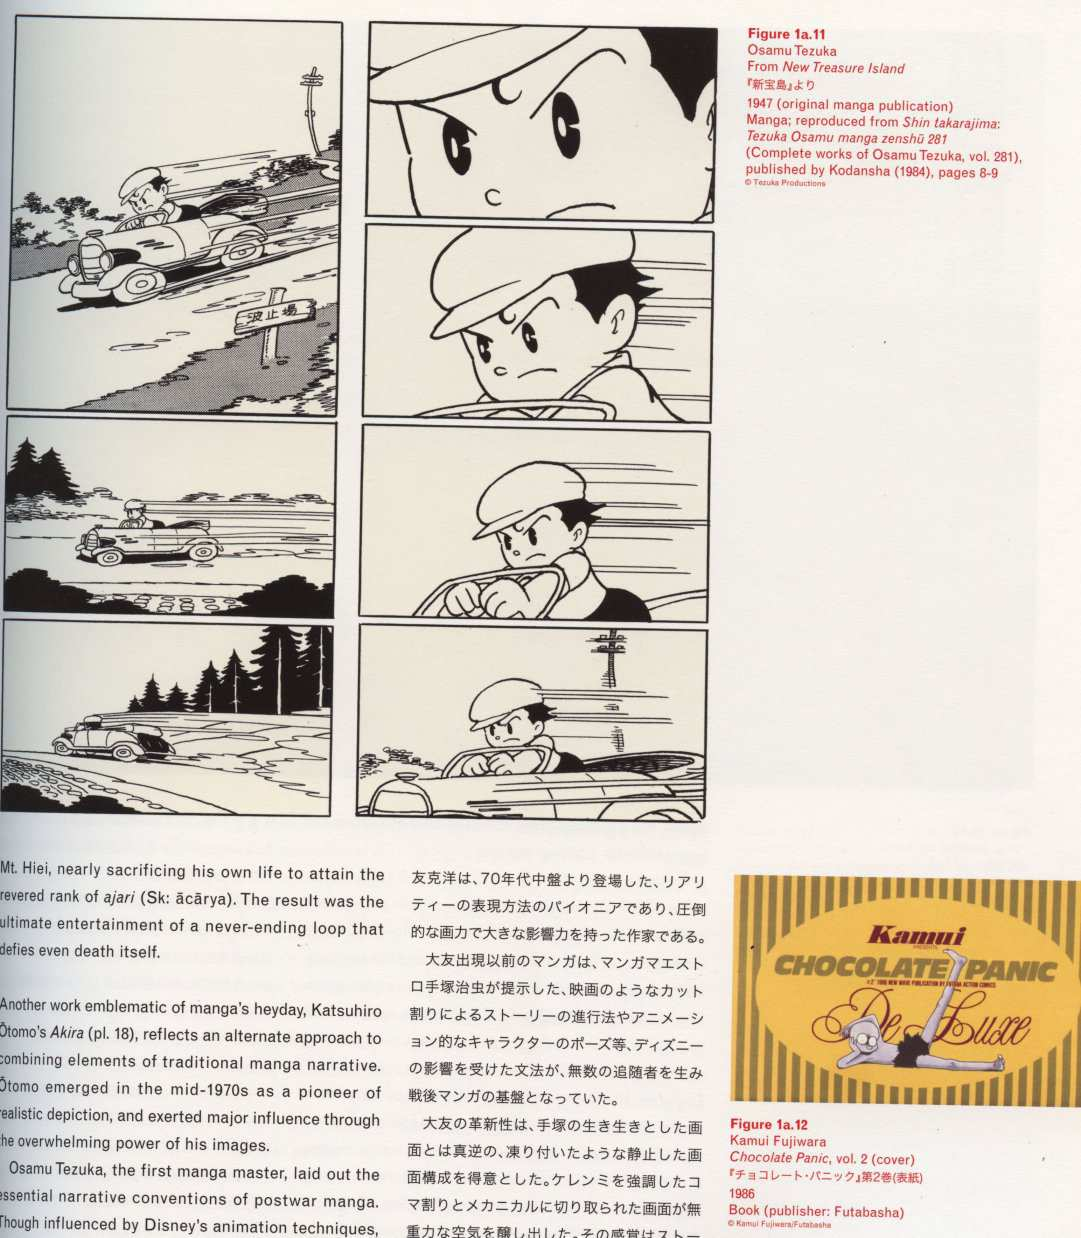 Caption top: Figure 1a.11 Osamu Tezuka From New Treasure Island 1947 (original manga publication) Manga; reproduced from Shin takarajima: Tezuka Osamu manga zenshū 281 (Complete works of Osamu Tezuka, vol. 281), published by Kodansha (1984), pages 8-9 Caption right bottom: Figure 1a.12 Kamui Fujiwara Chocolate Panic, vol. 2 (cover) 1986 Book (publisher: Futabasha)